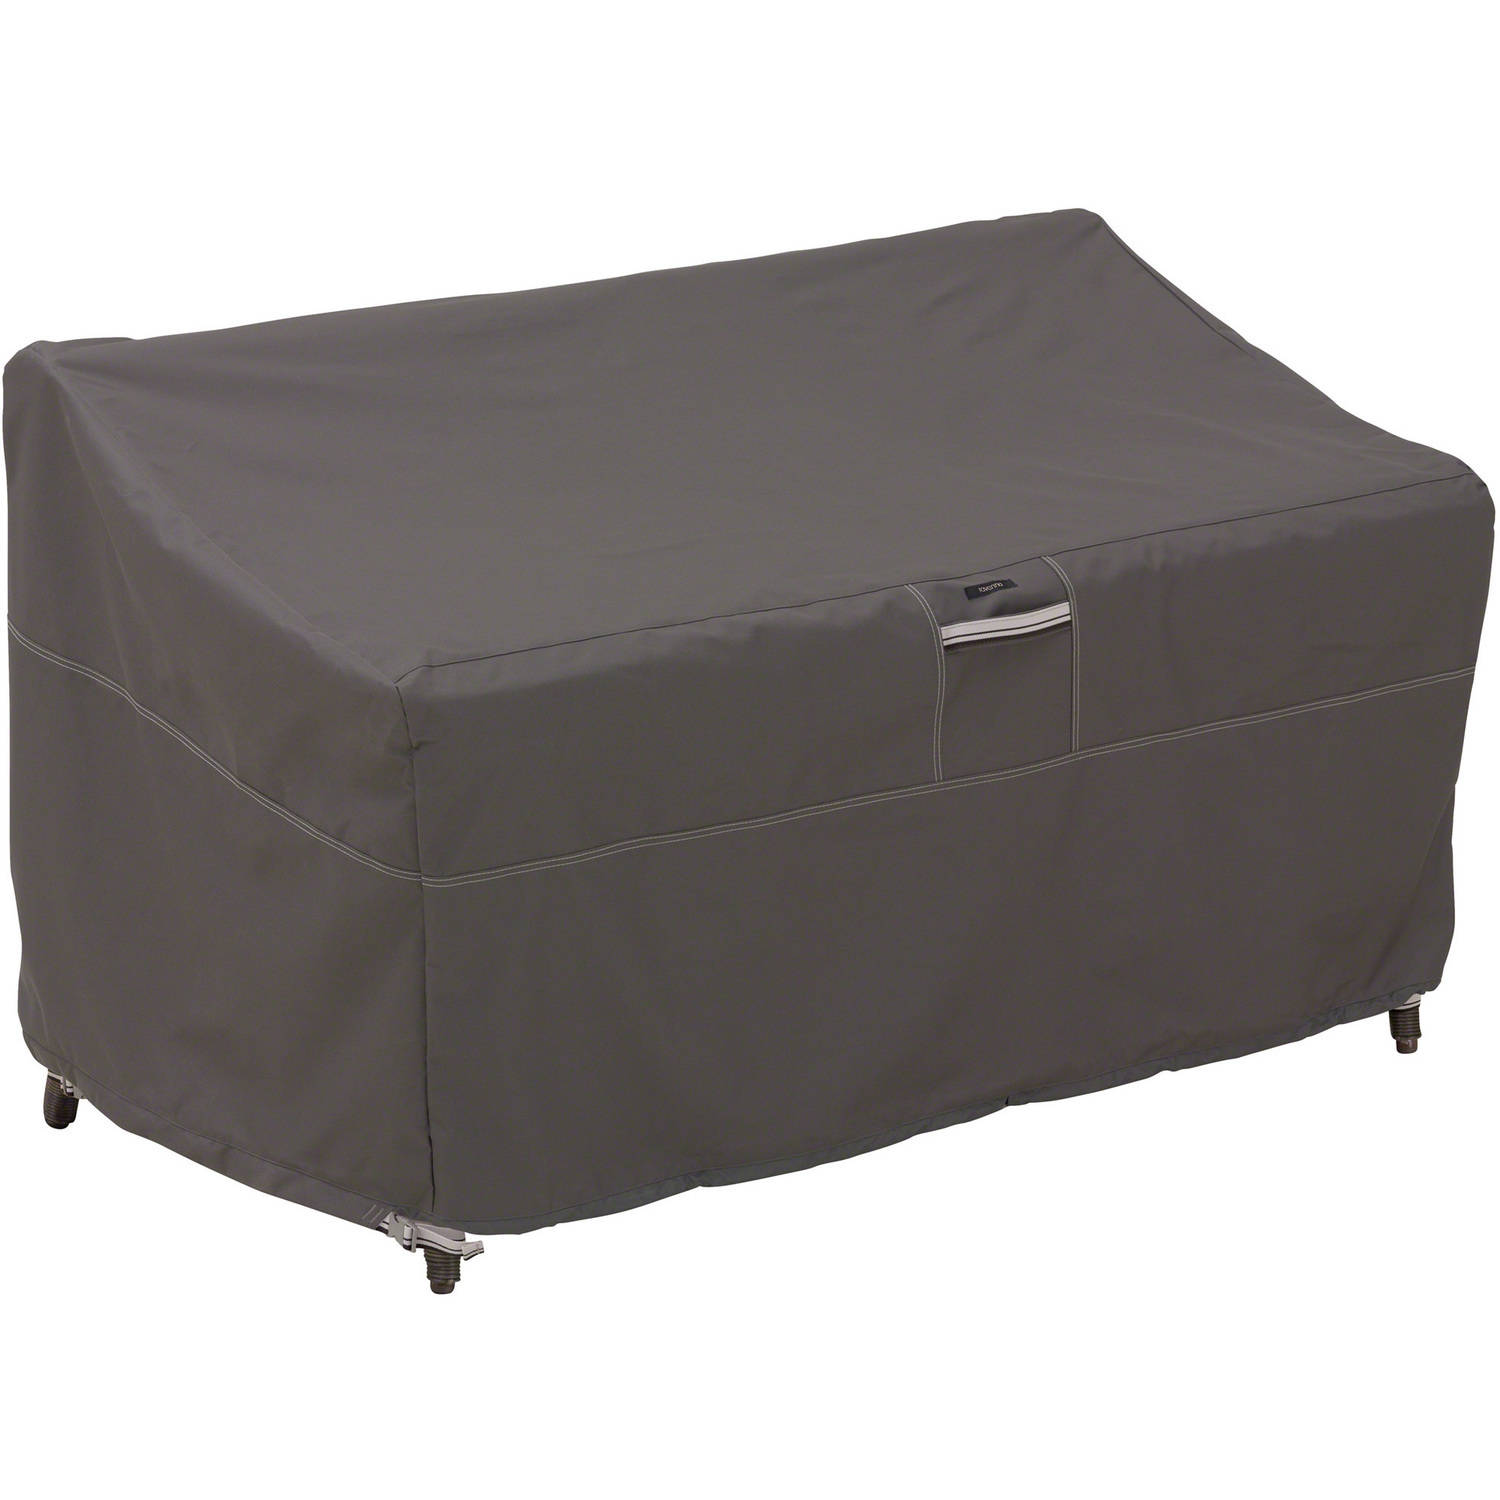 Classic Accessories Ravenna Loveseat Furniture Storage Cover For Hampton Bay Spring Haven All-Weather Patio Loveseats by Classic Accessories